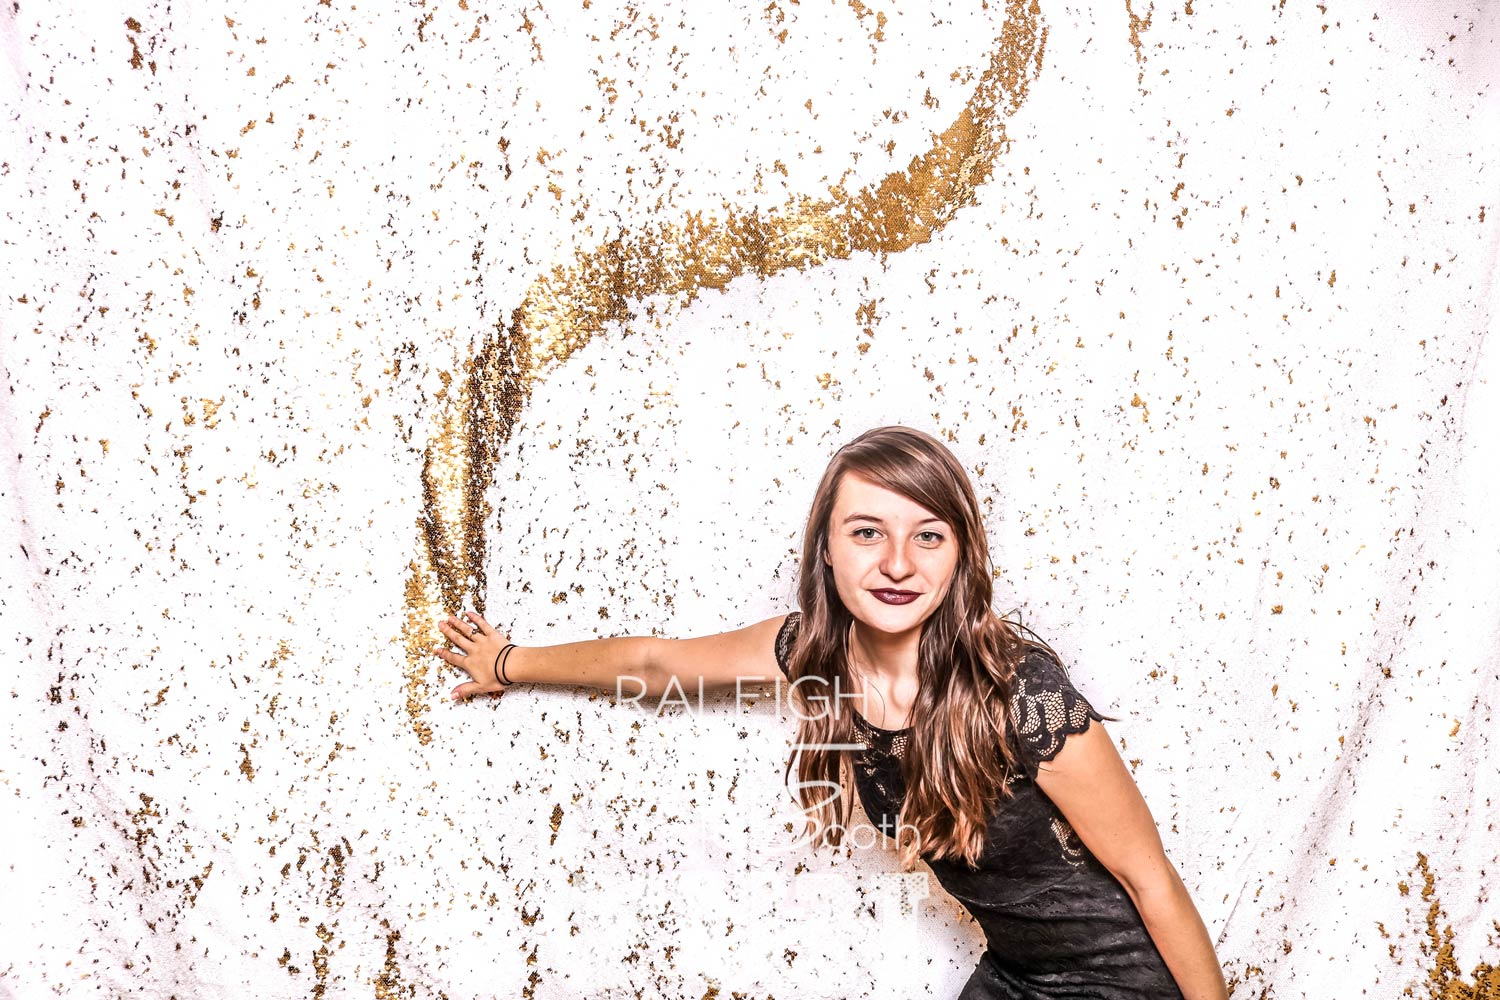 White-Gold-Sequin-Raleigh-Photo-Booth-1